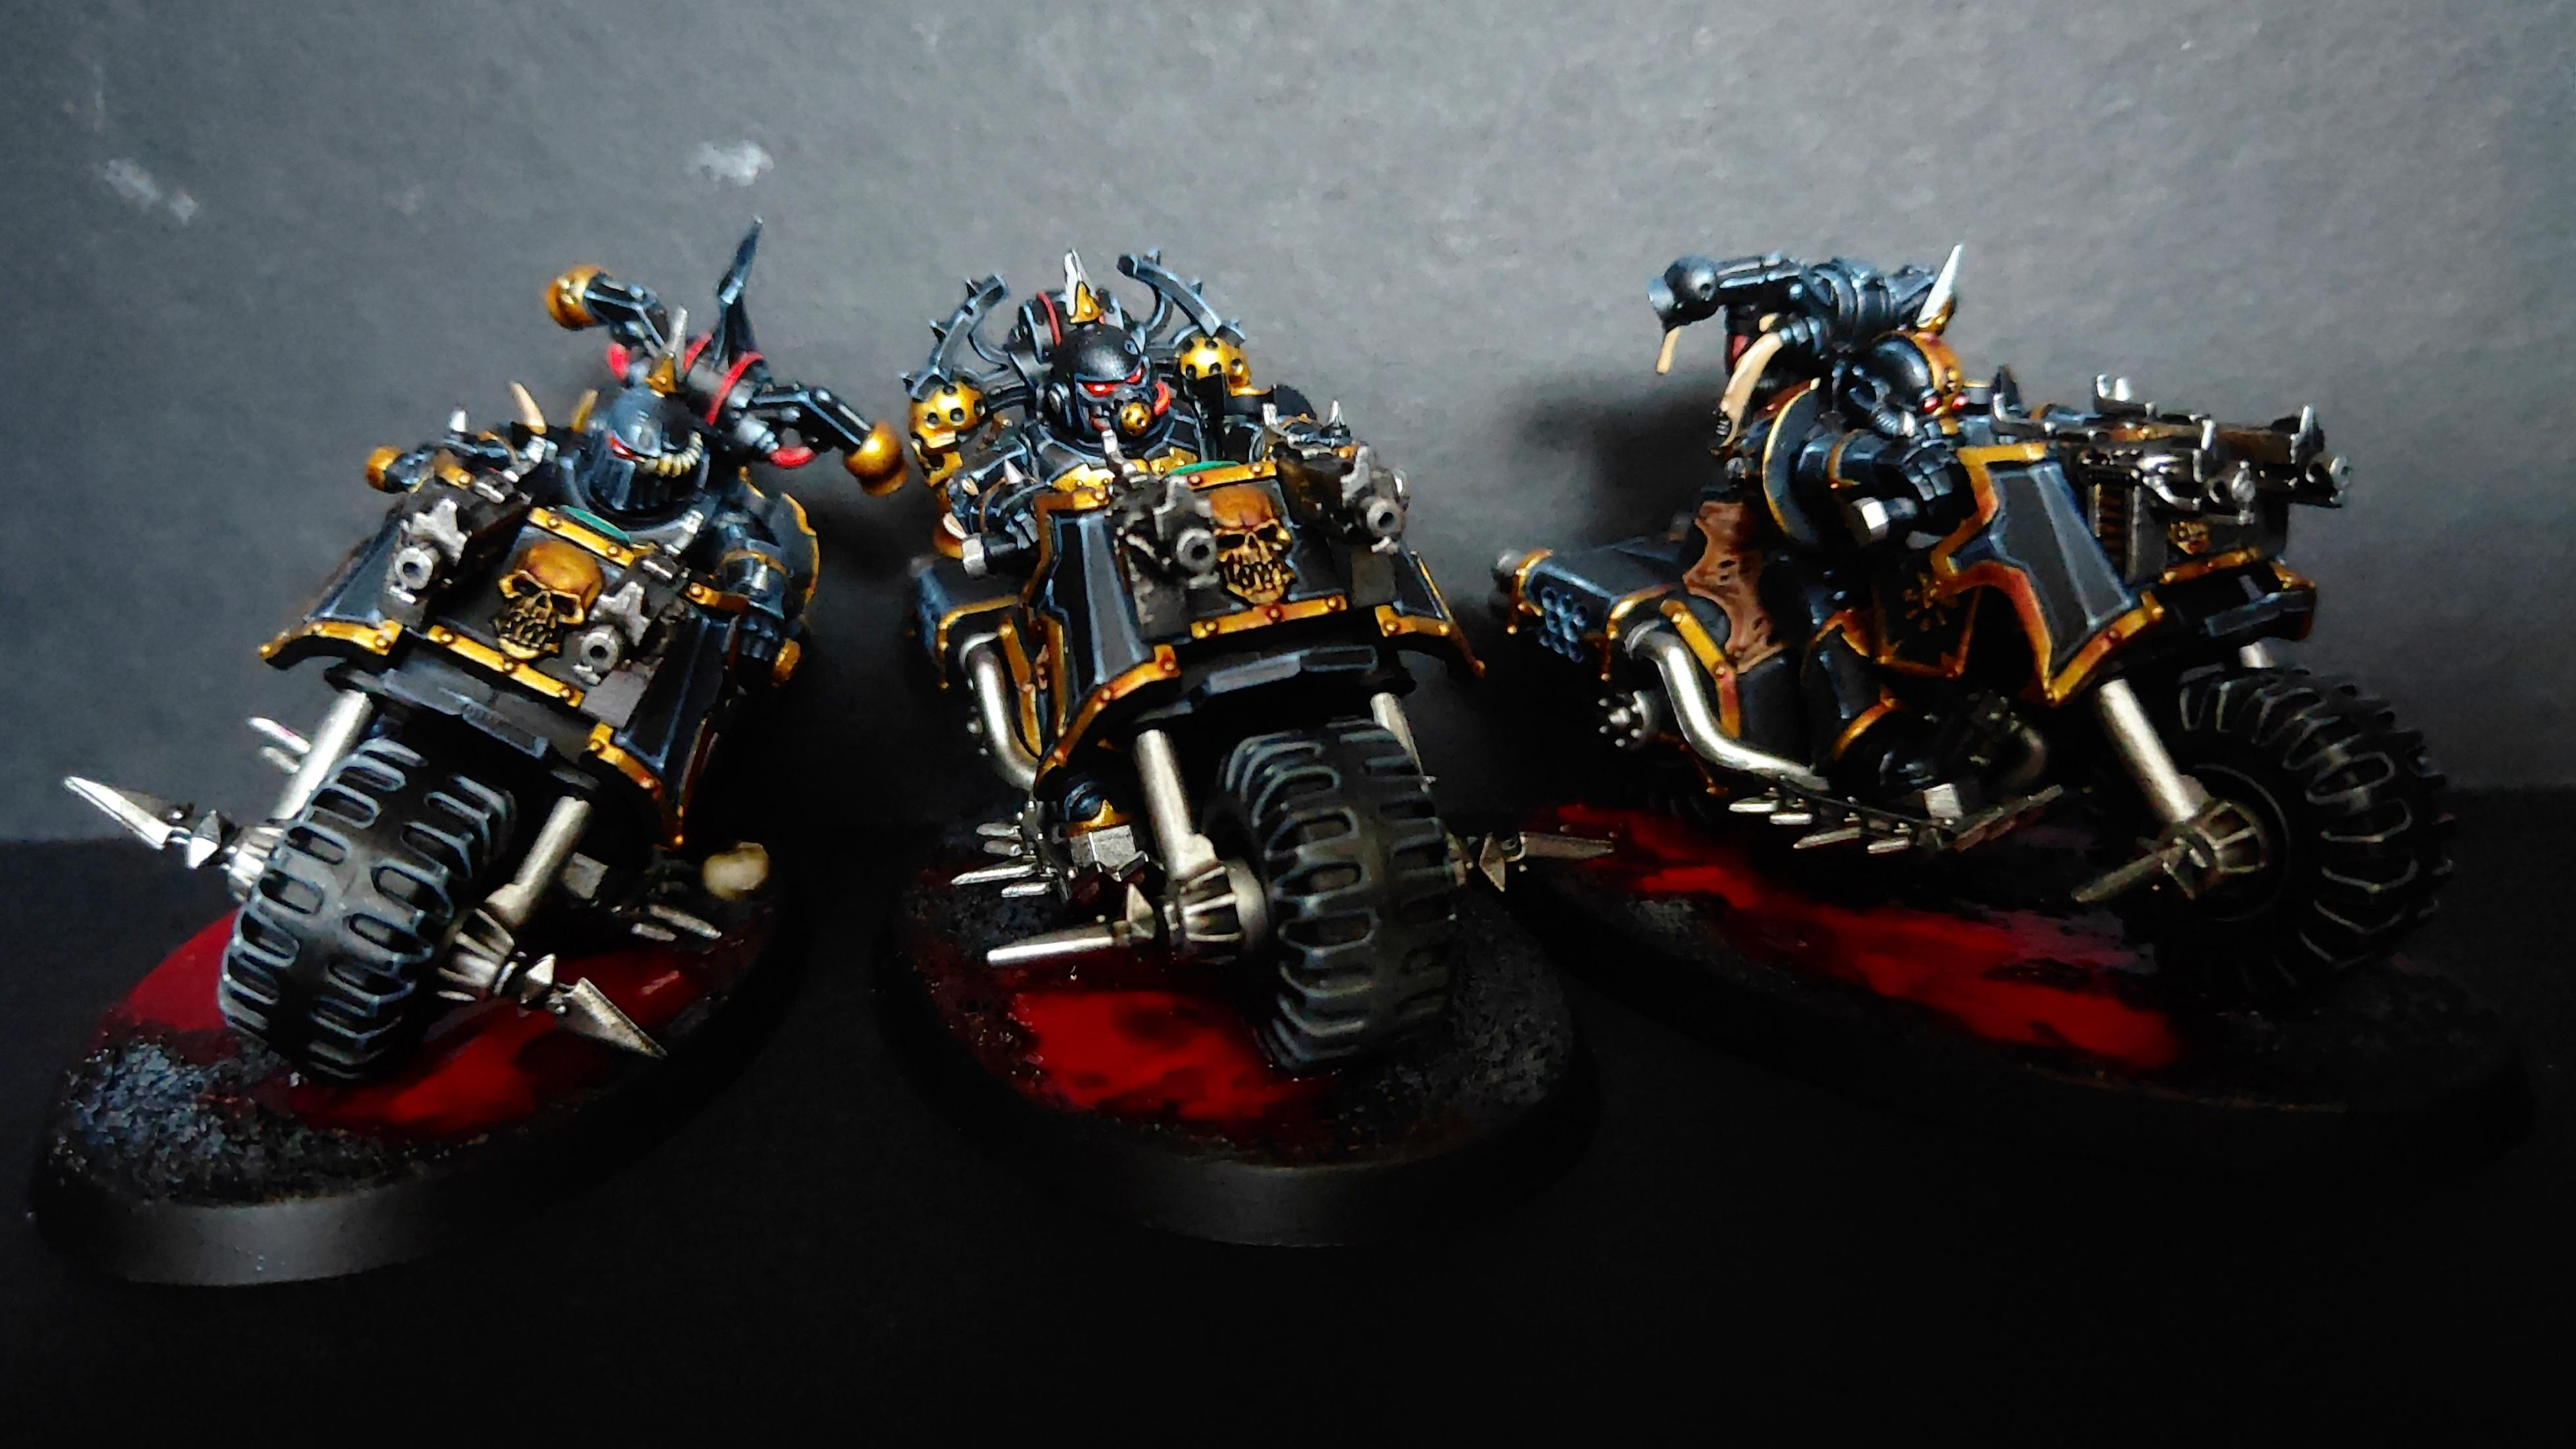 Bike, Black Legion, Chaos, Chaos Bikers, Chaos Knight, Chaos Space Marines, Chaos Undivided, Heretic Astartes, Nurgle, Plague Marines, Sin Eaters, Warhammer 40,000